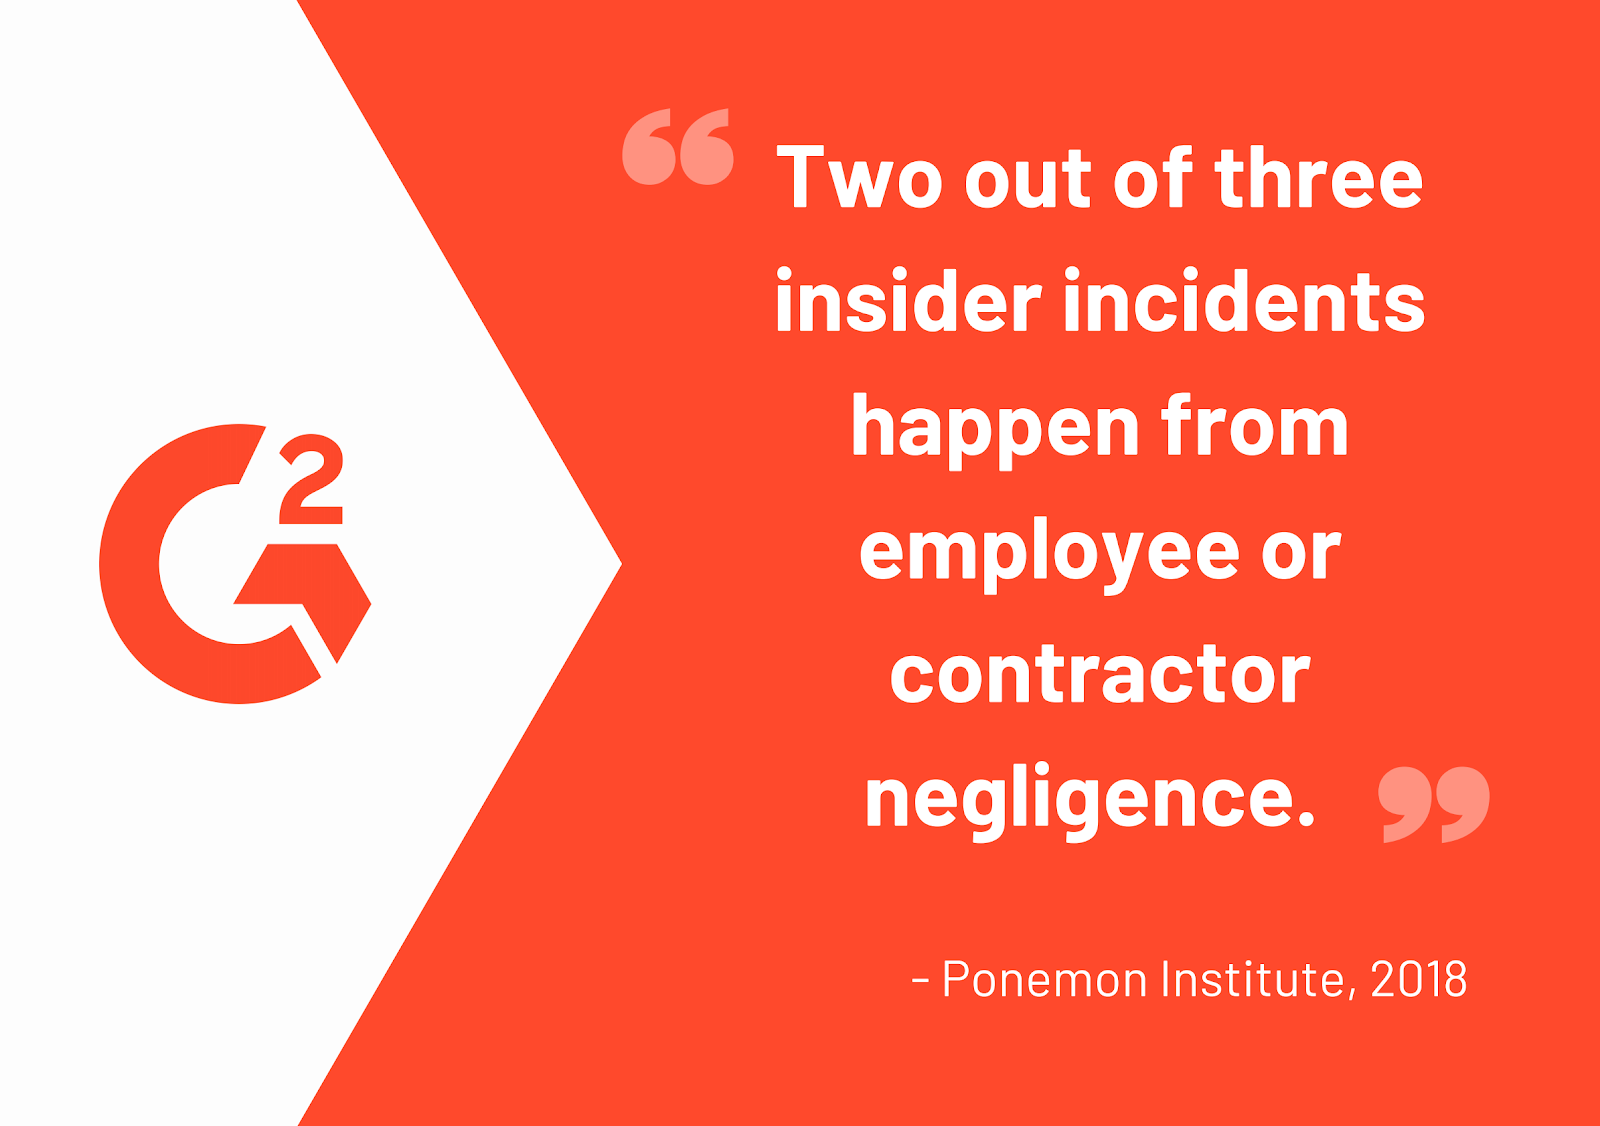 Contractor negligence and insider threats